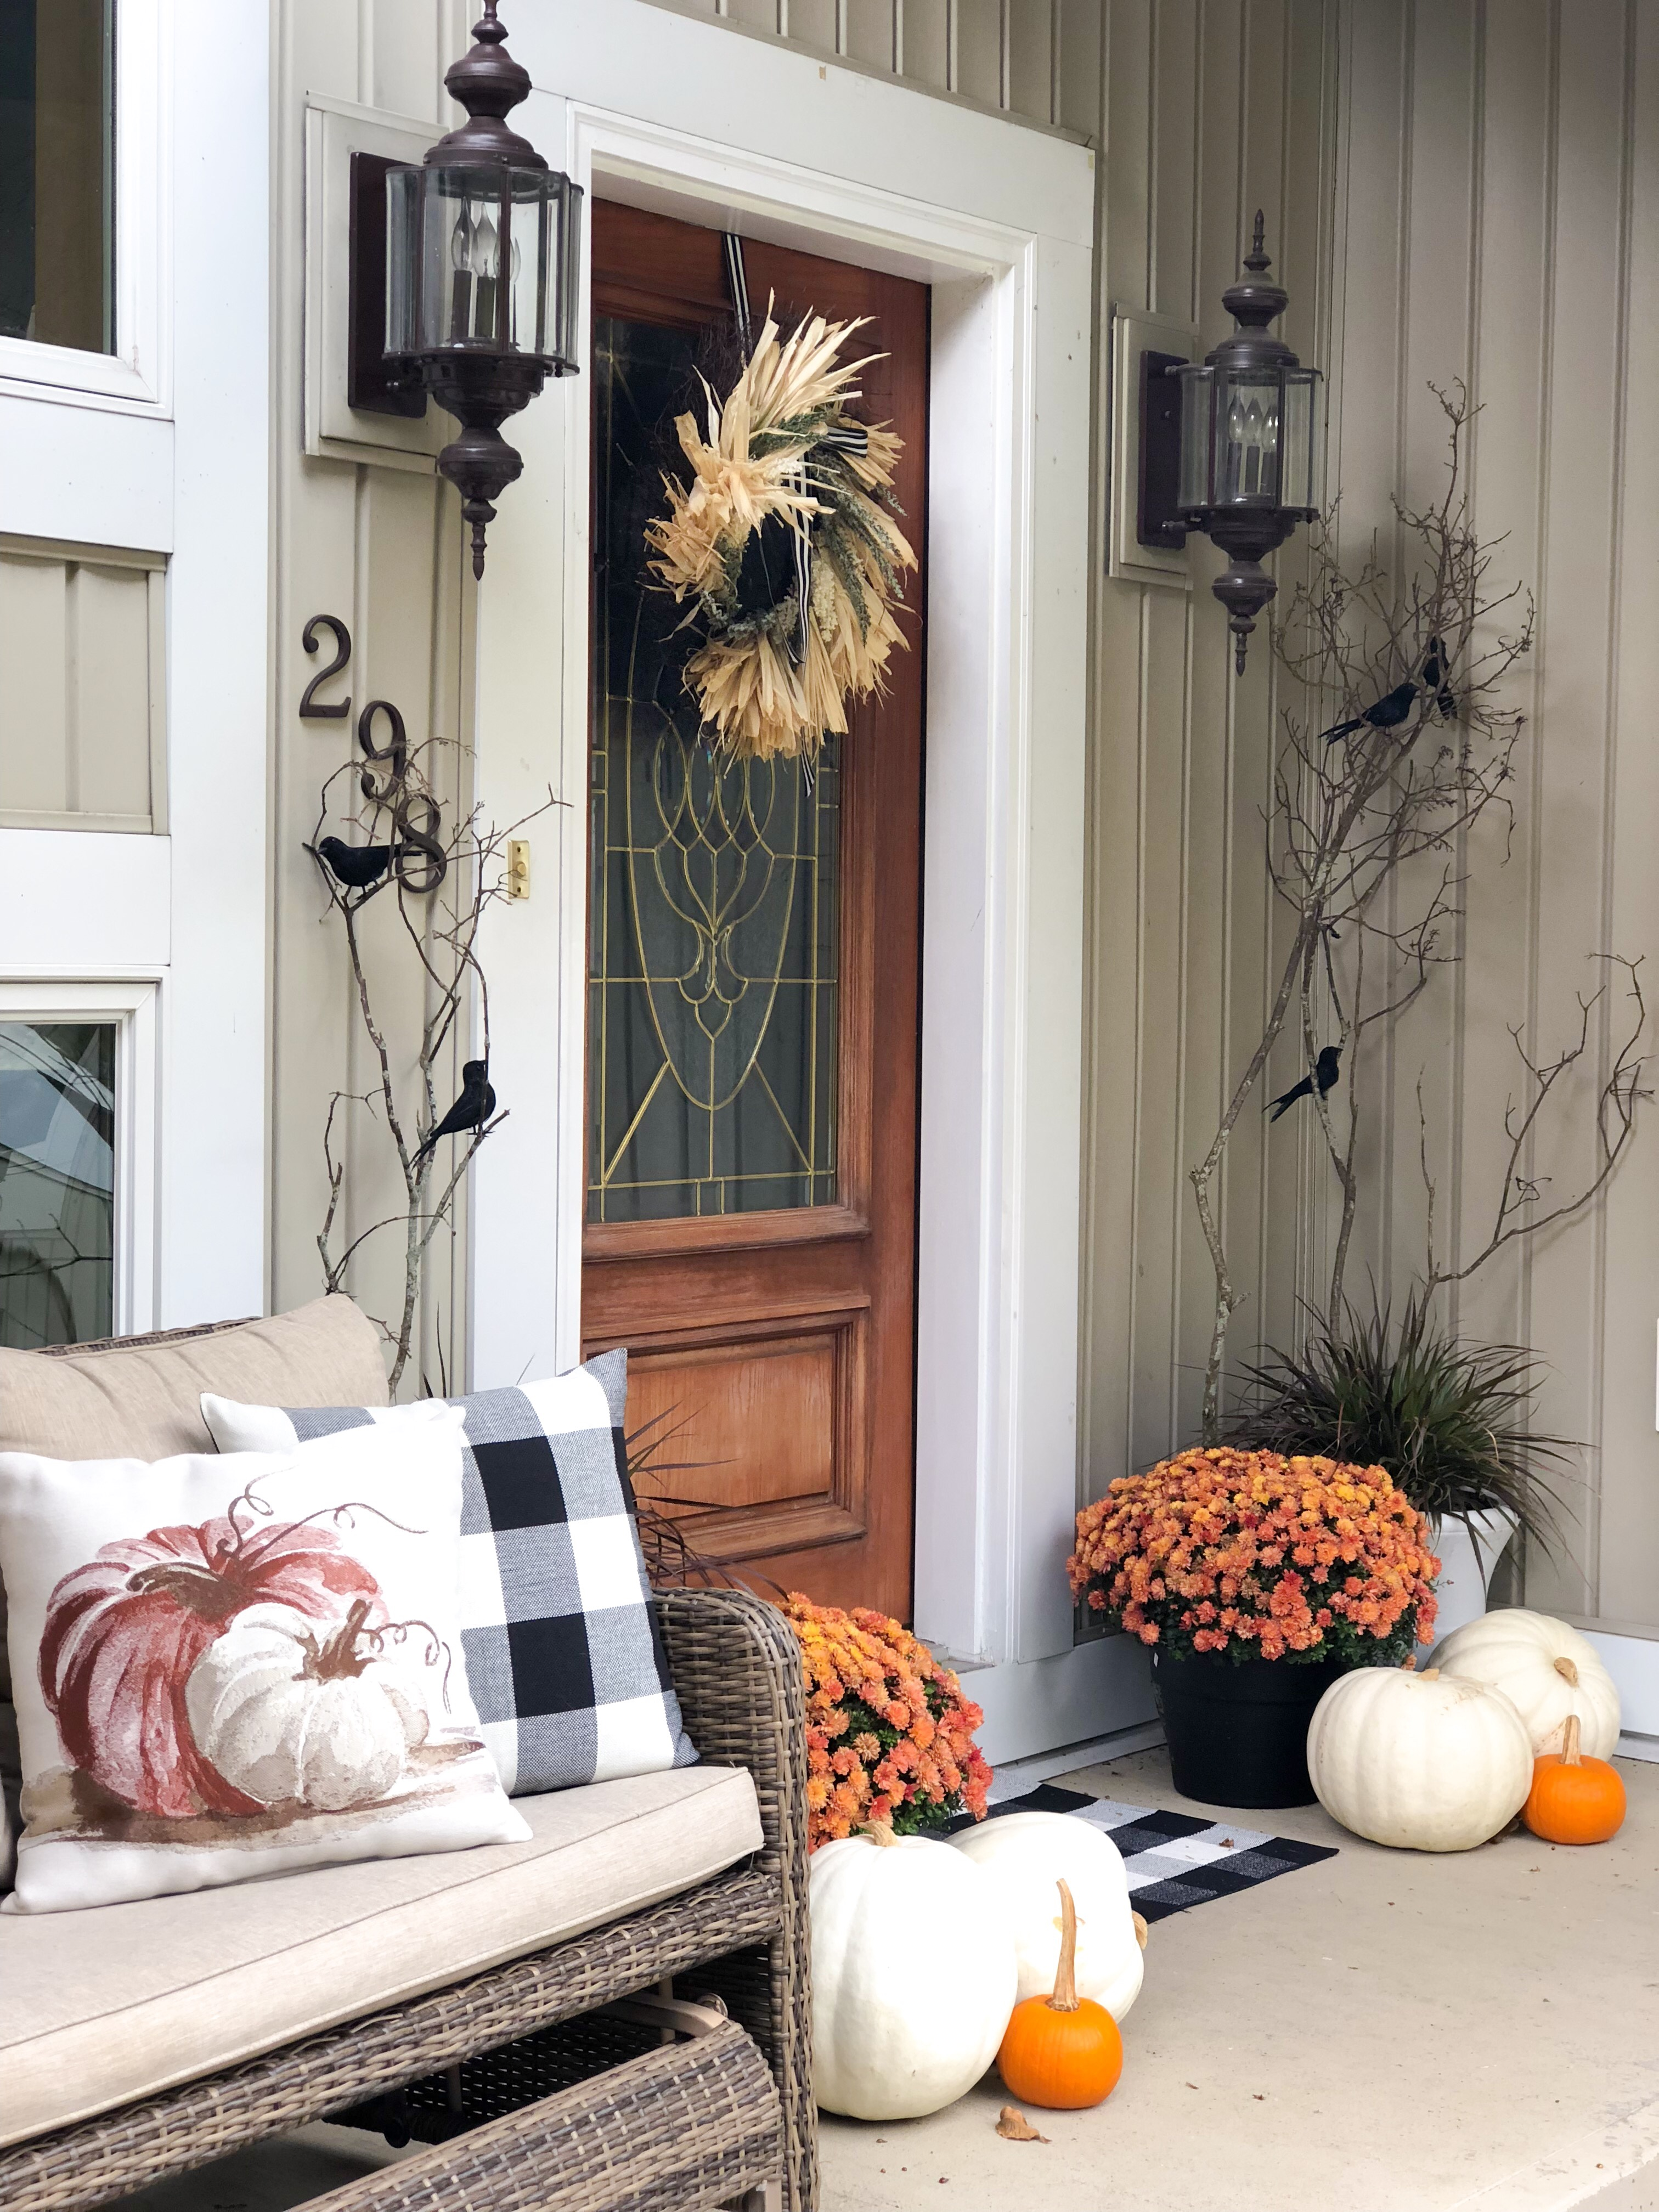 Orange Mums, white pumpkins with straw wreath, tree branches with black crows and buffalo check pillow and pumpkin pillow on bench.